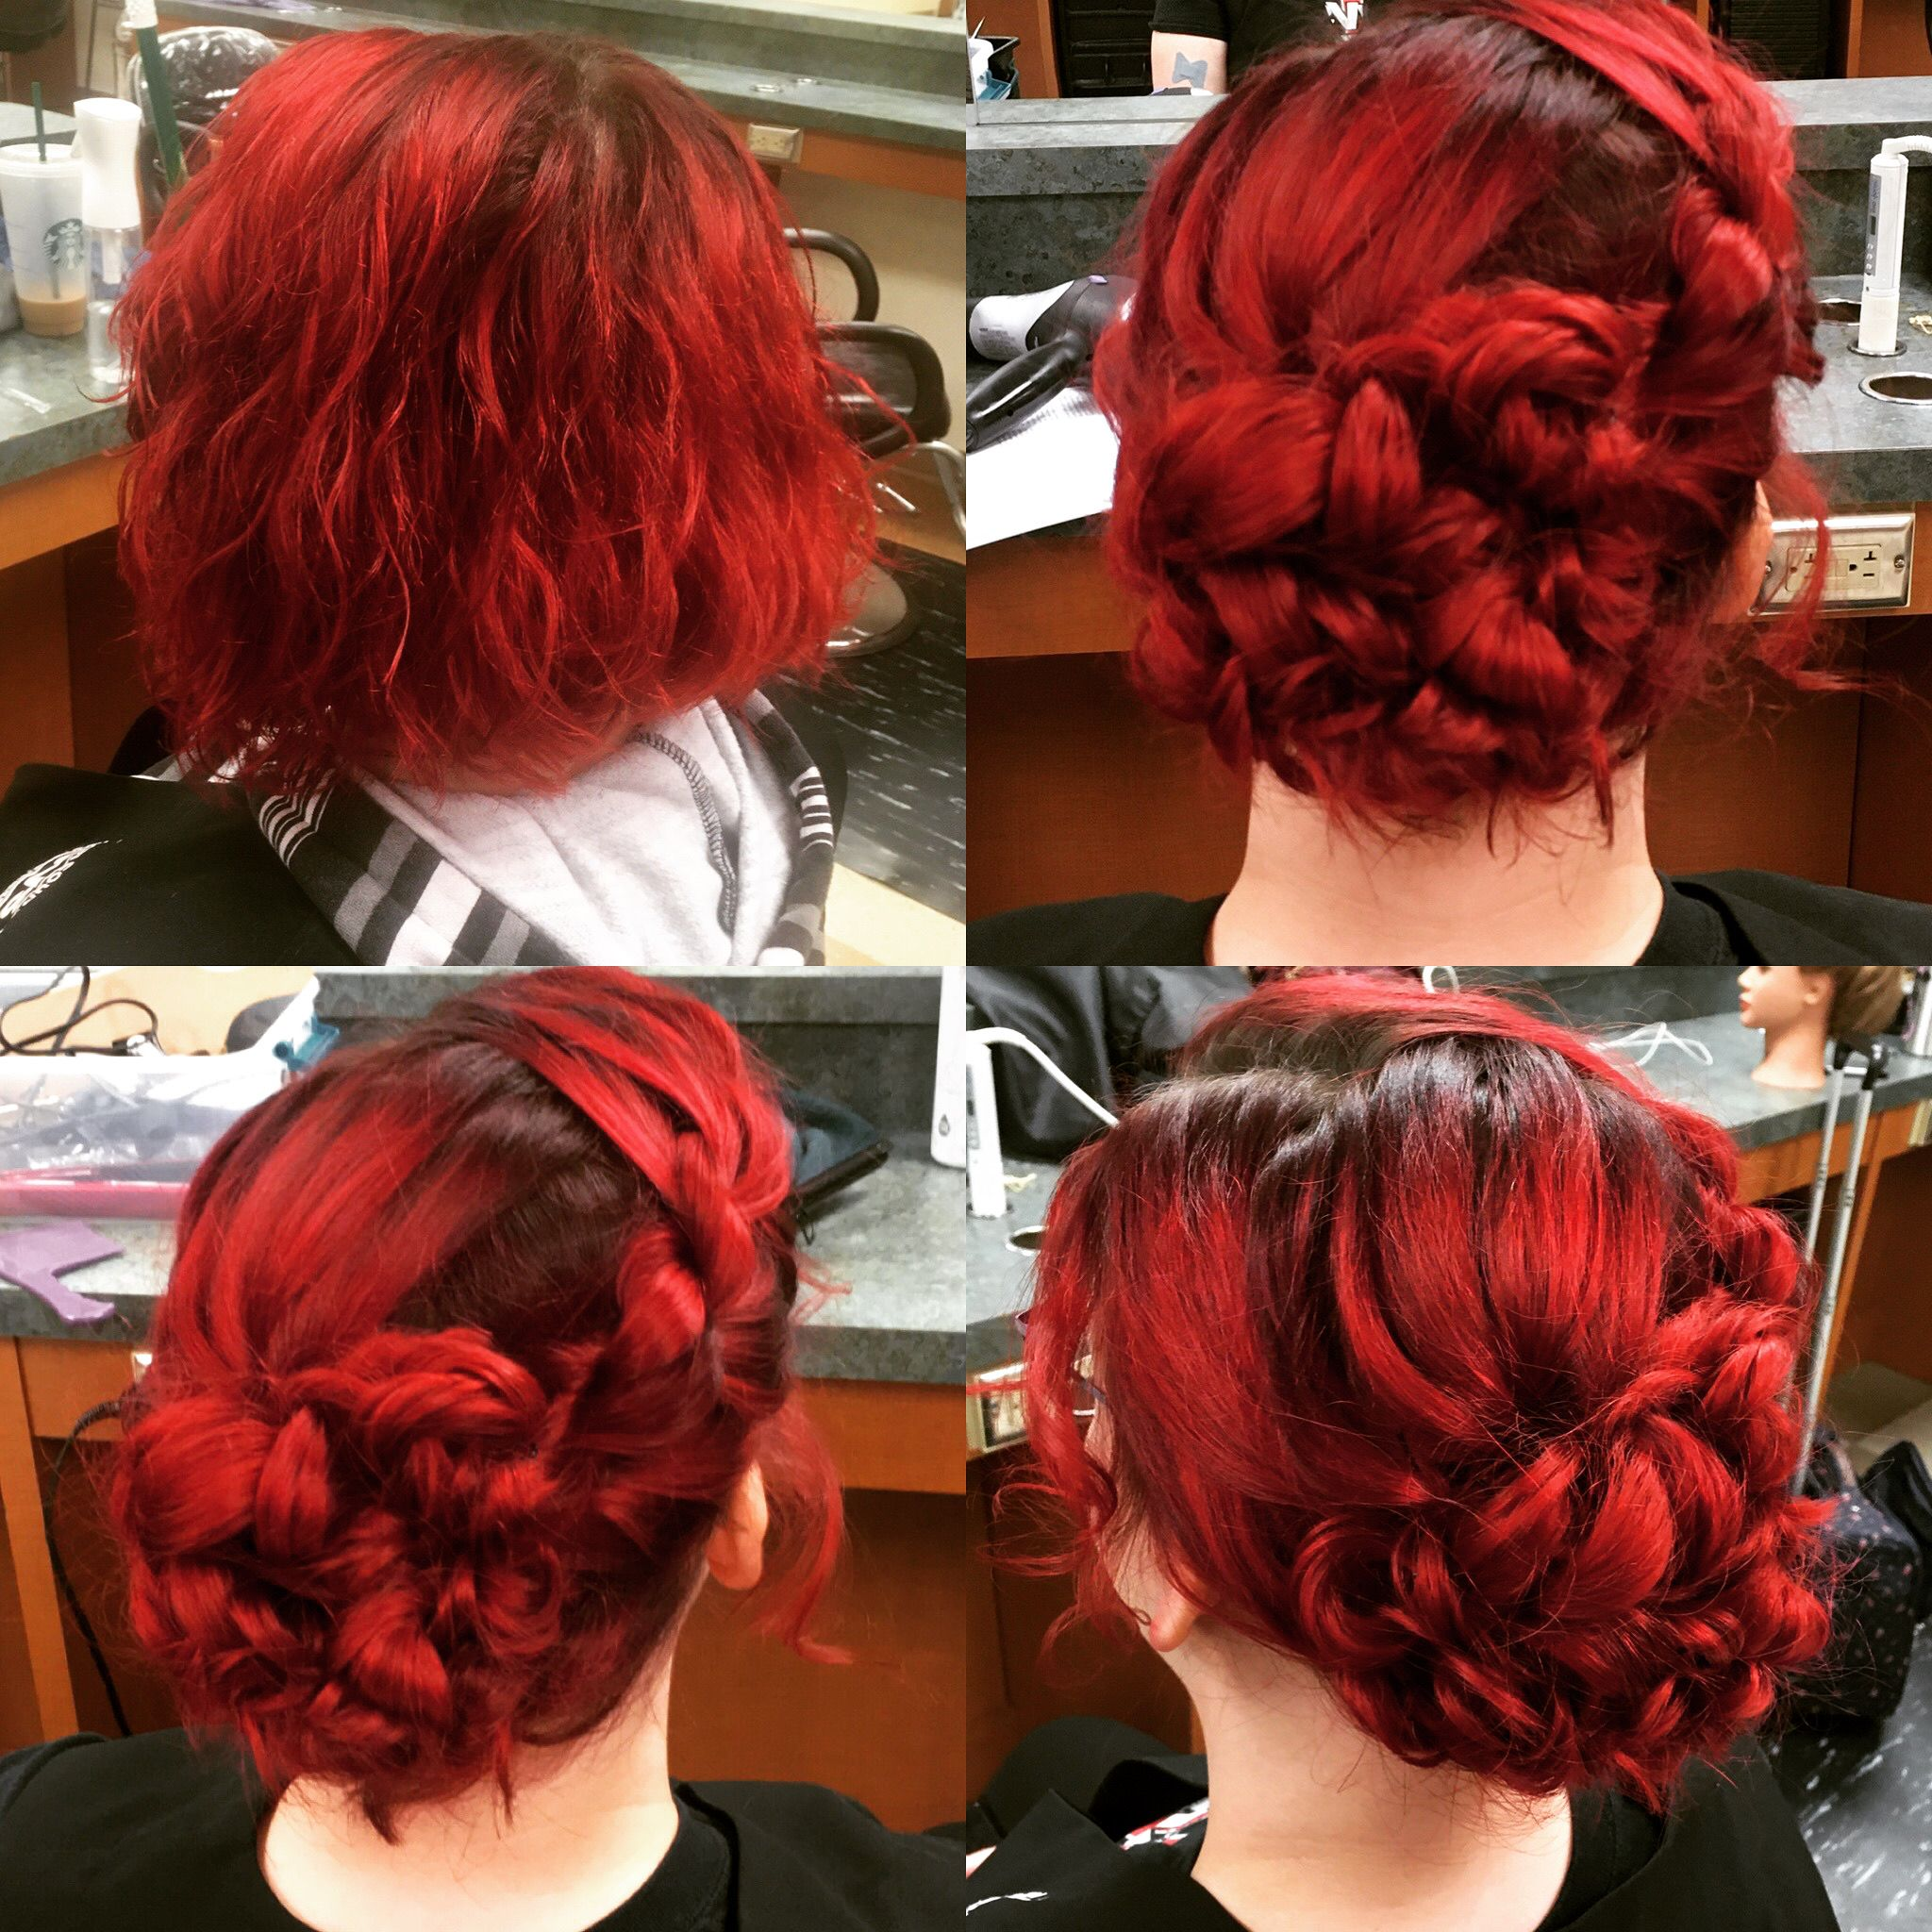 Short Hair Updo Short Red Hair Red Hair Updo Short Hair Updo